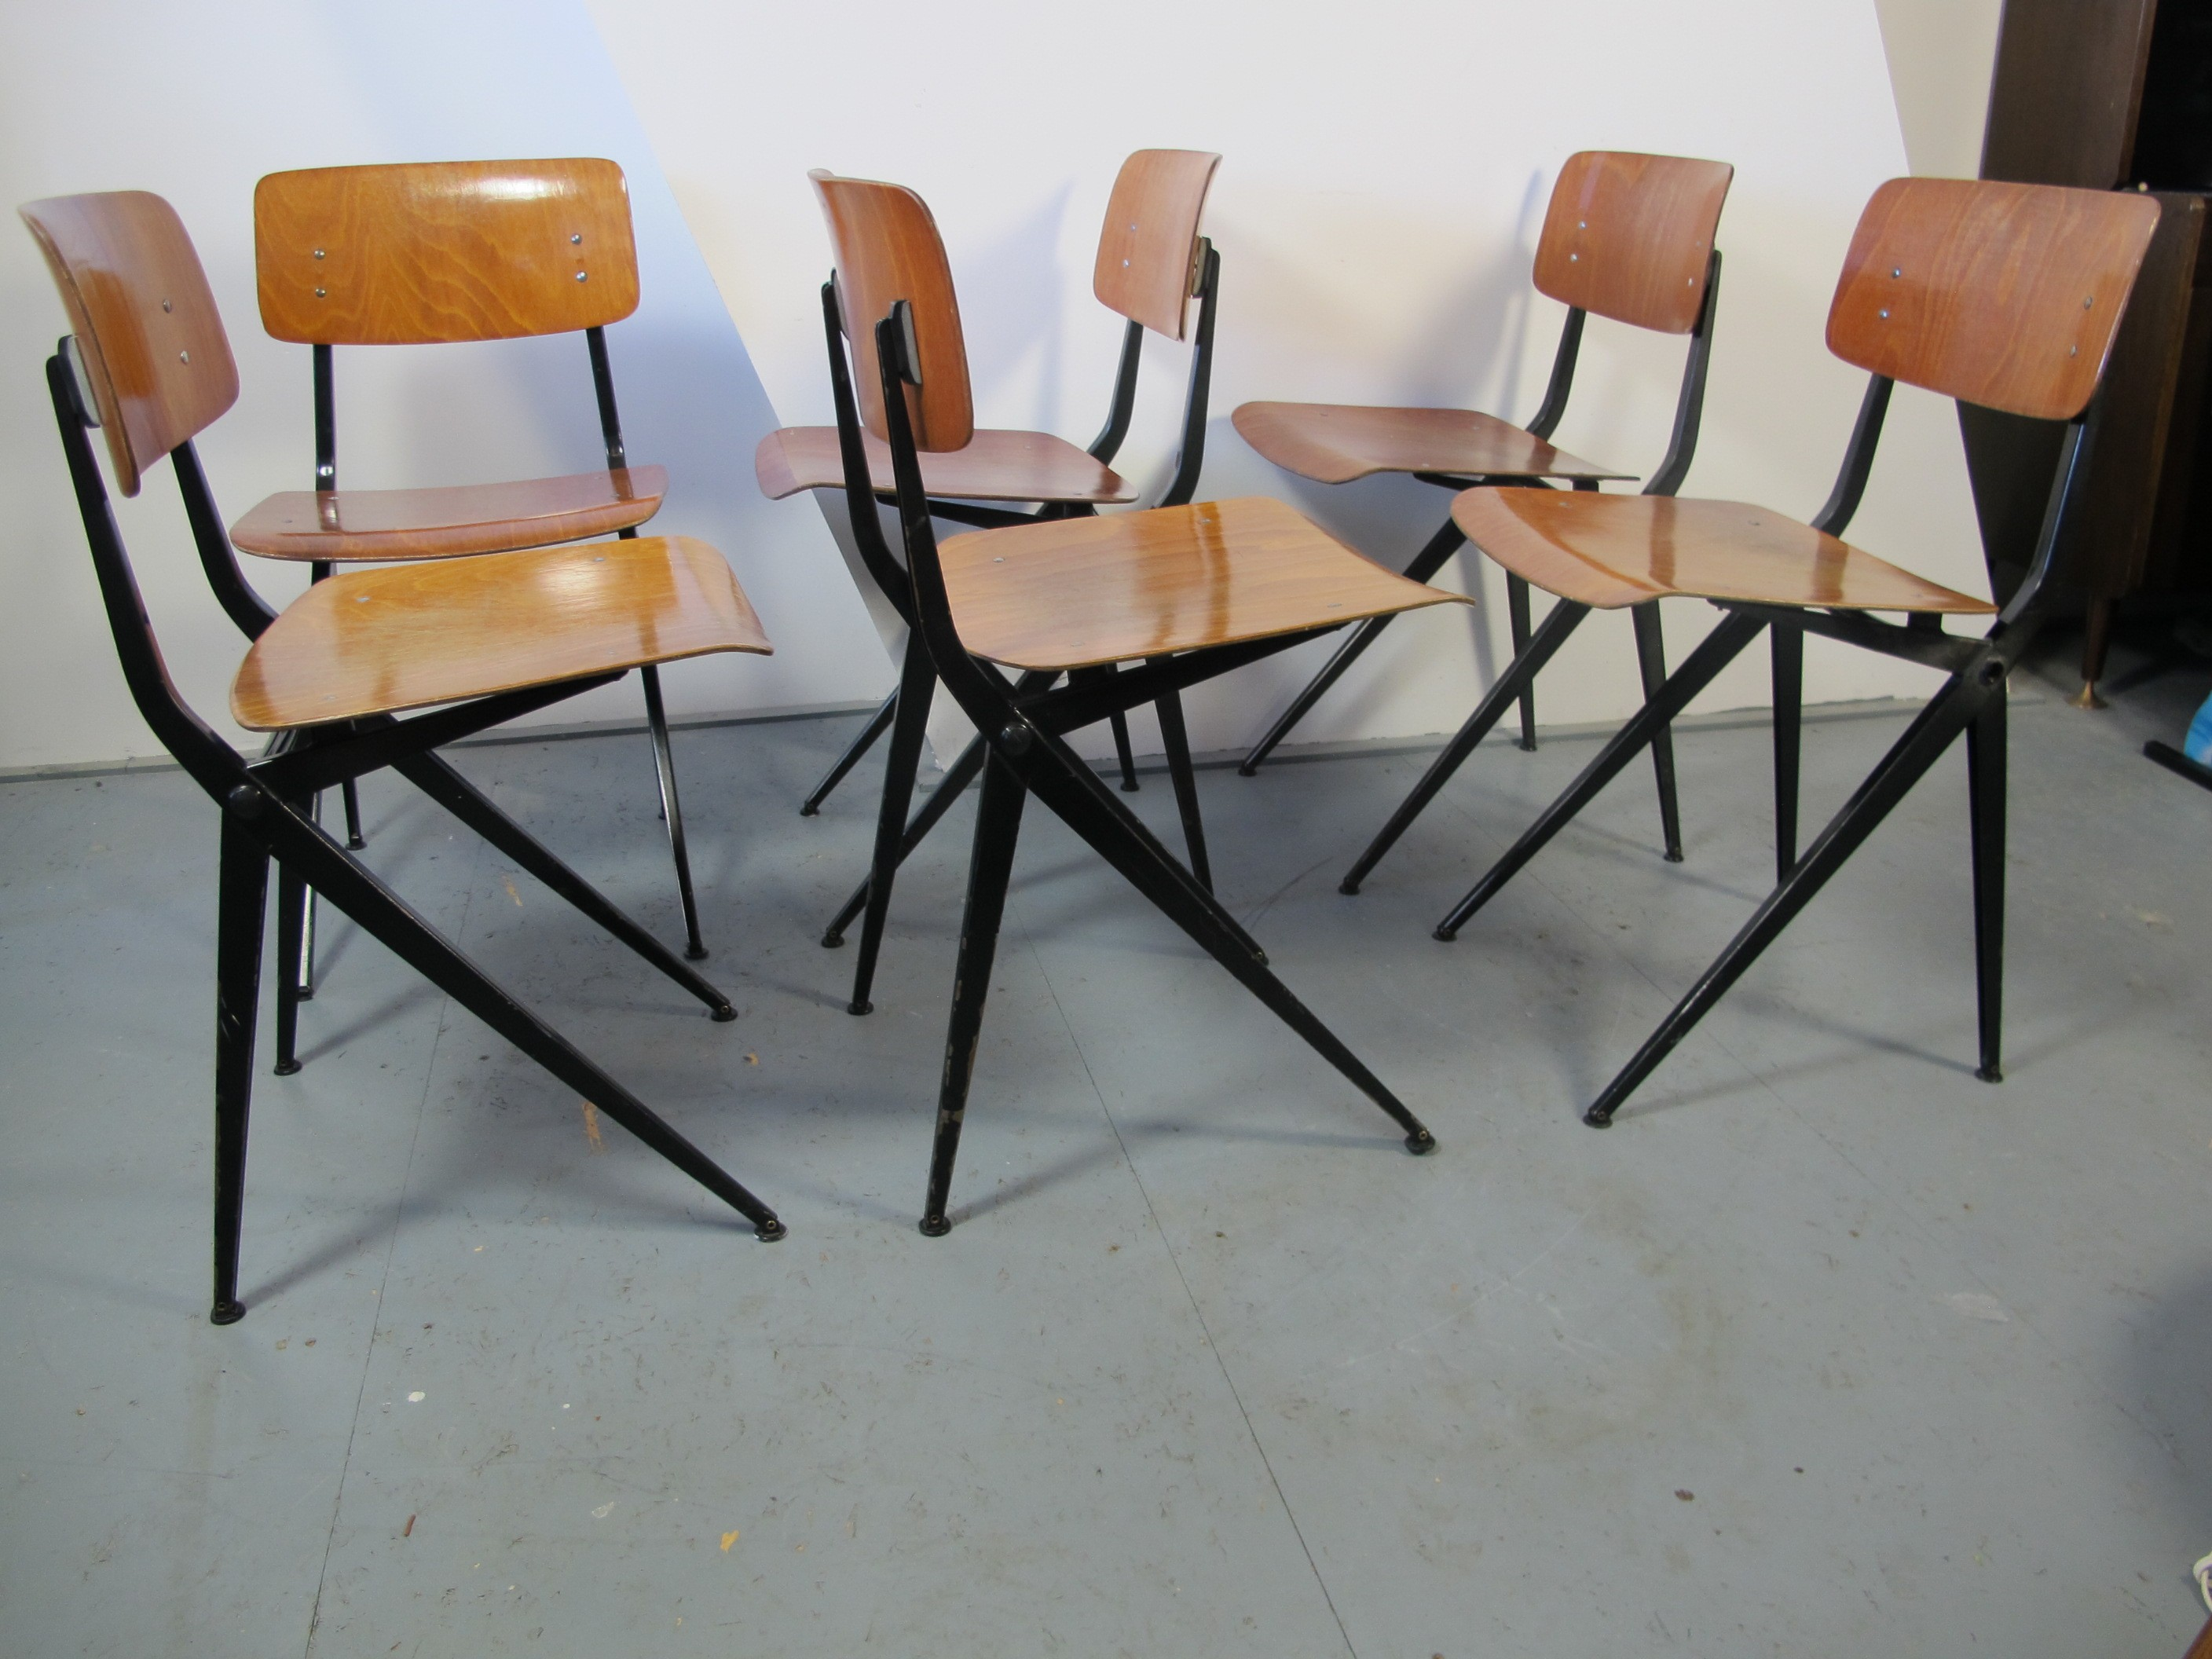 mid century industrial furniture. Previous Next Mid Century Industrial Furniture